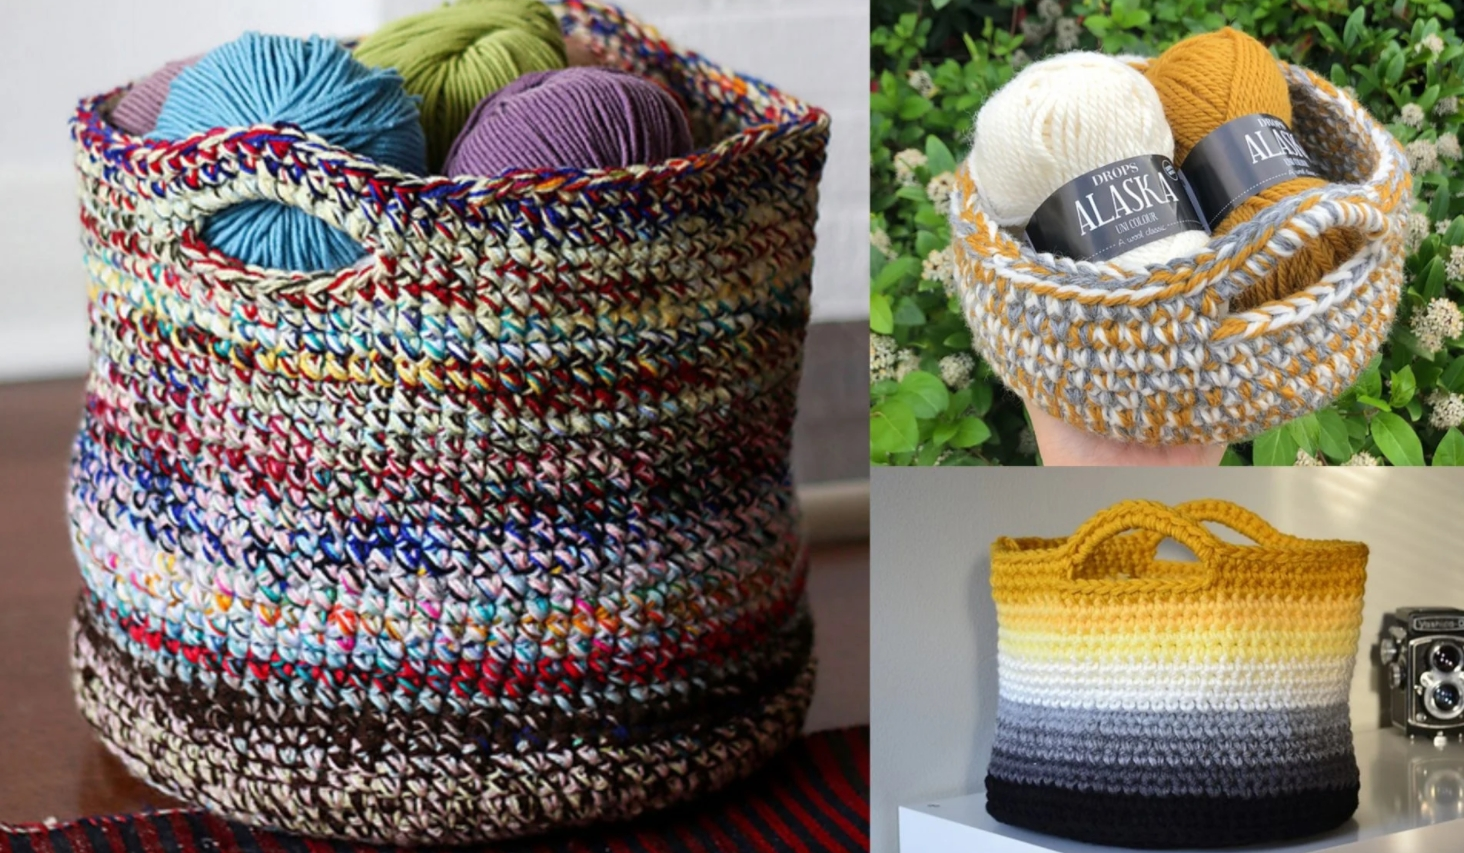 Wicker Designed Basket for Storage of Yarns